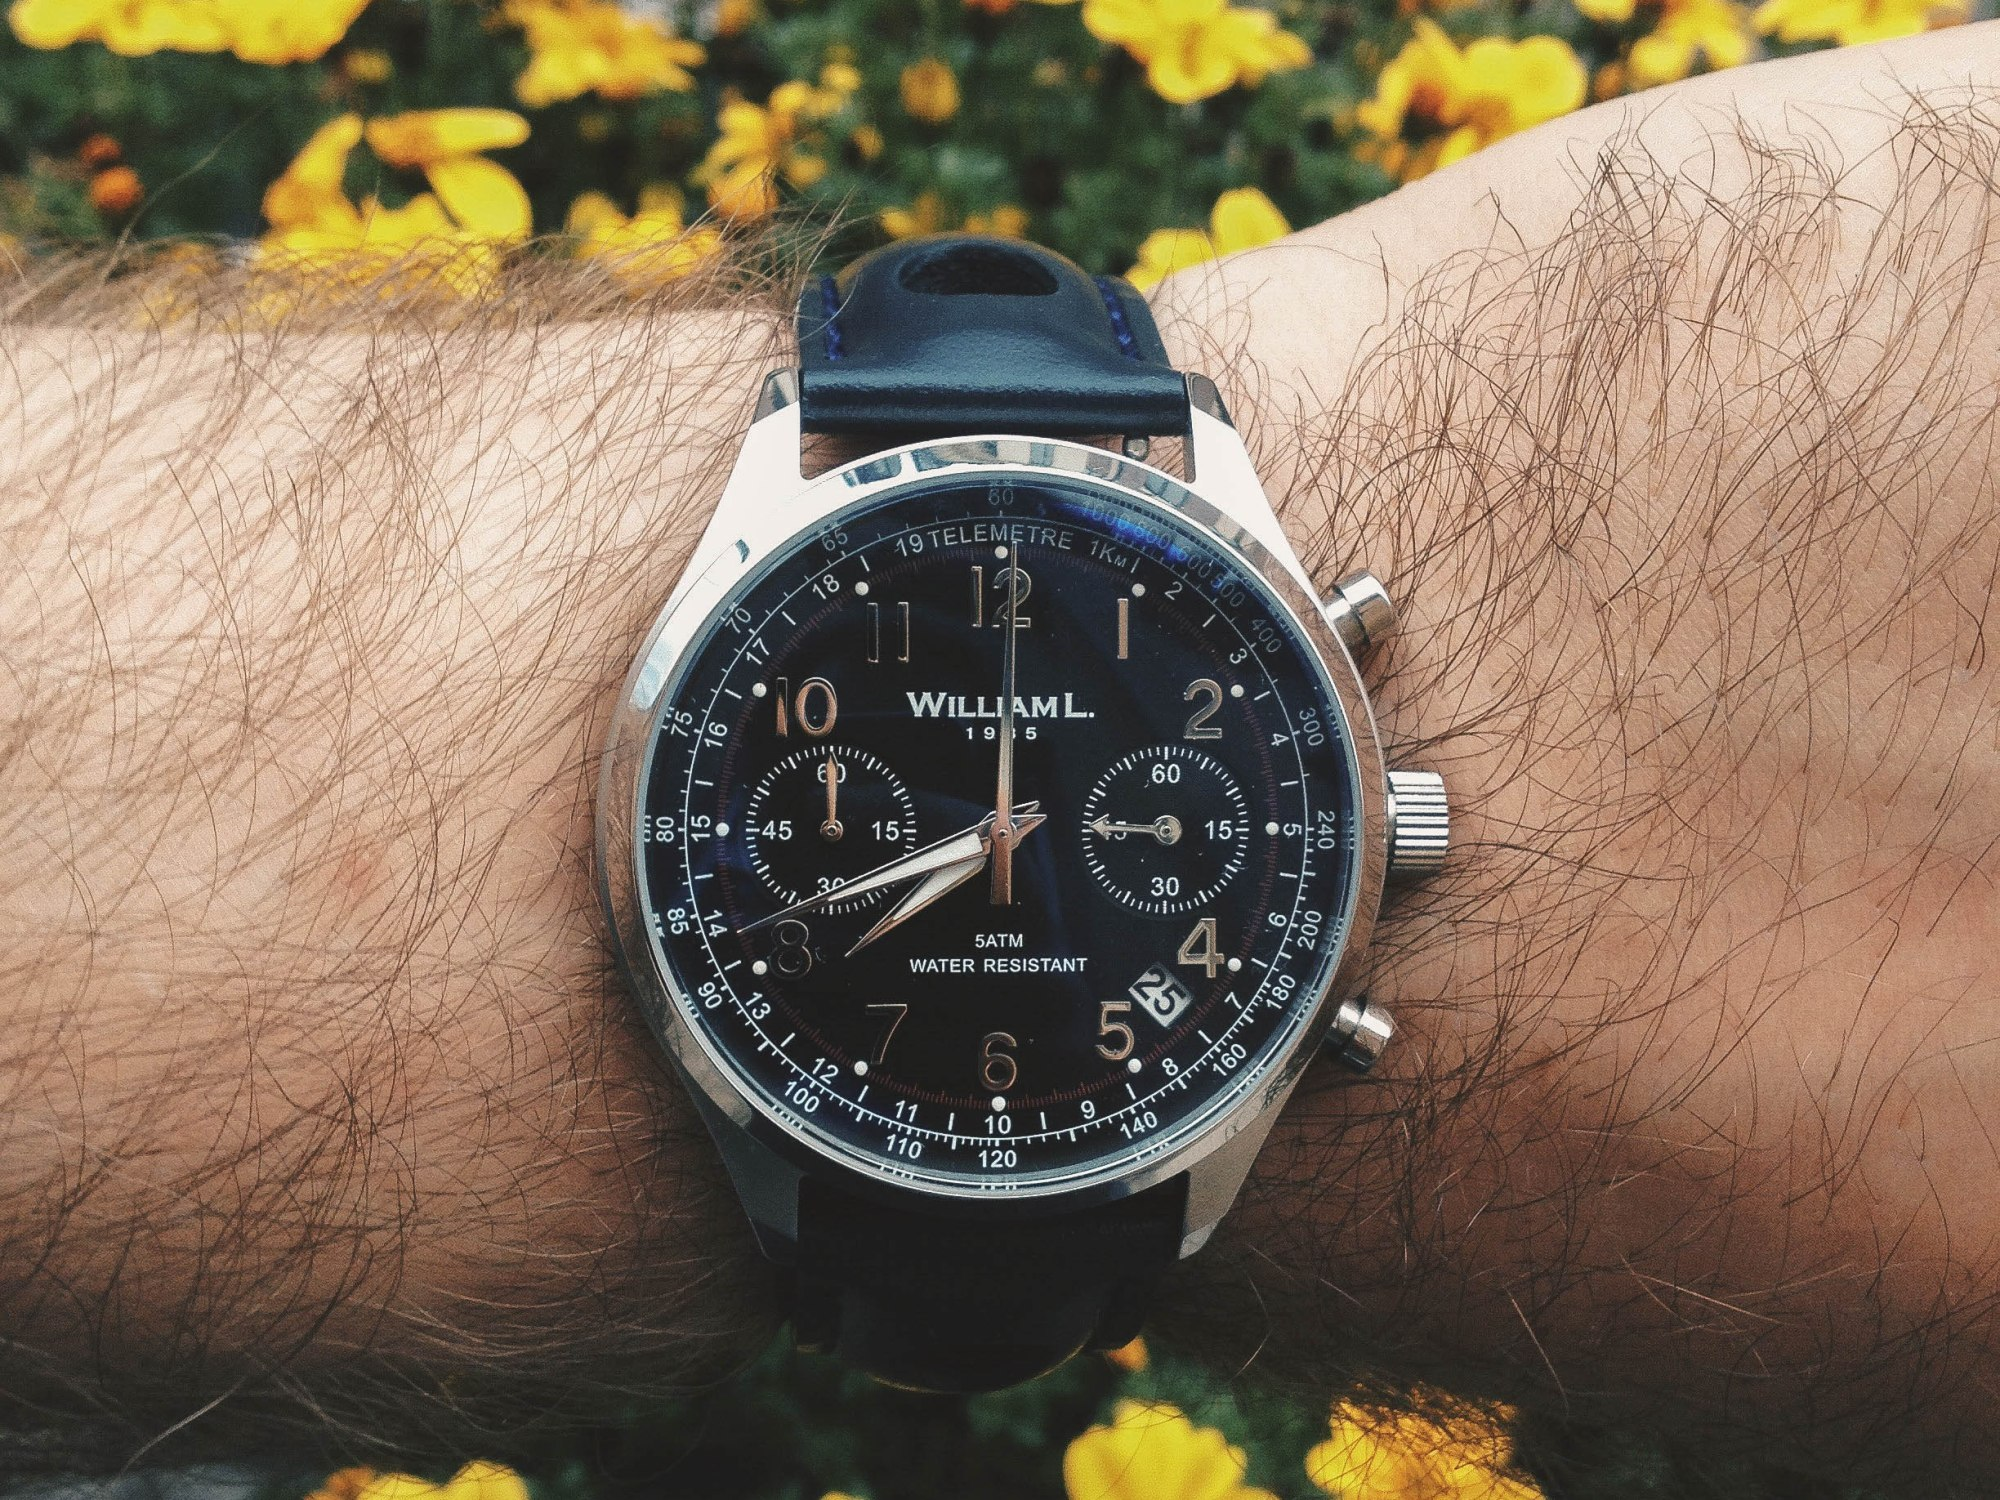 7b2c57655 William L. 1985 Vintage Style Chronograph (Review ) – KaminskyBlog